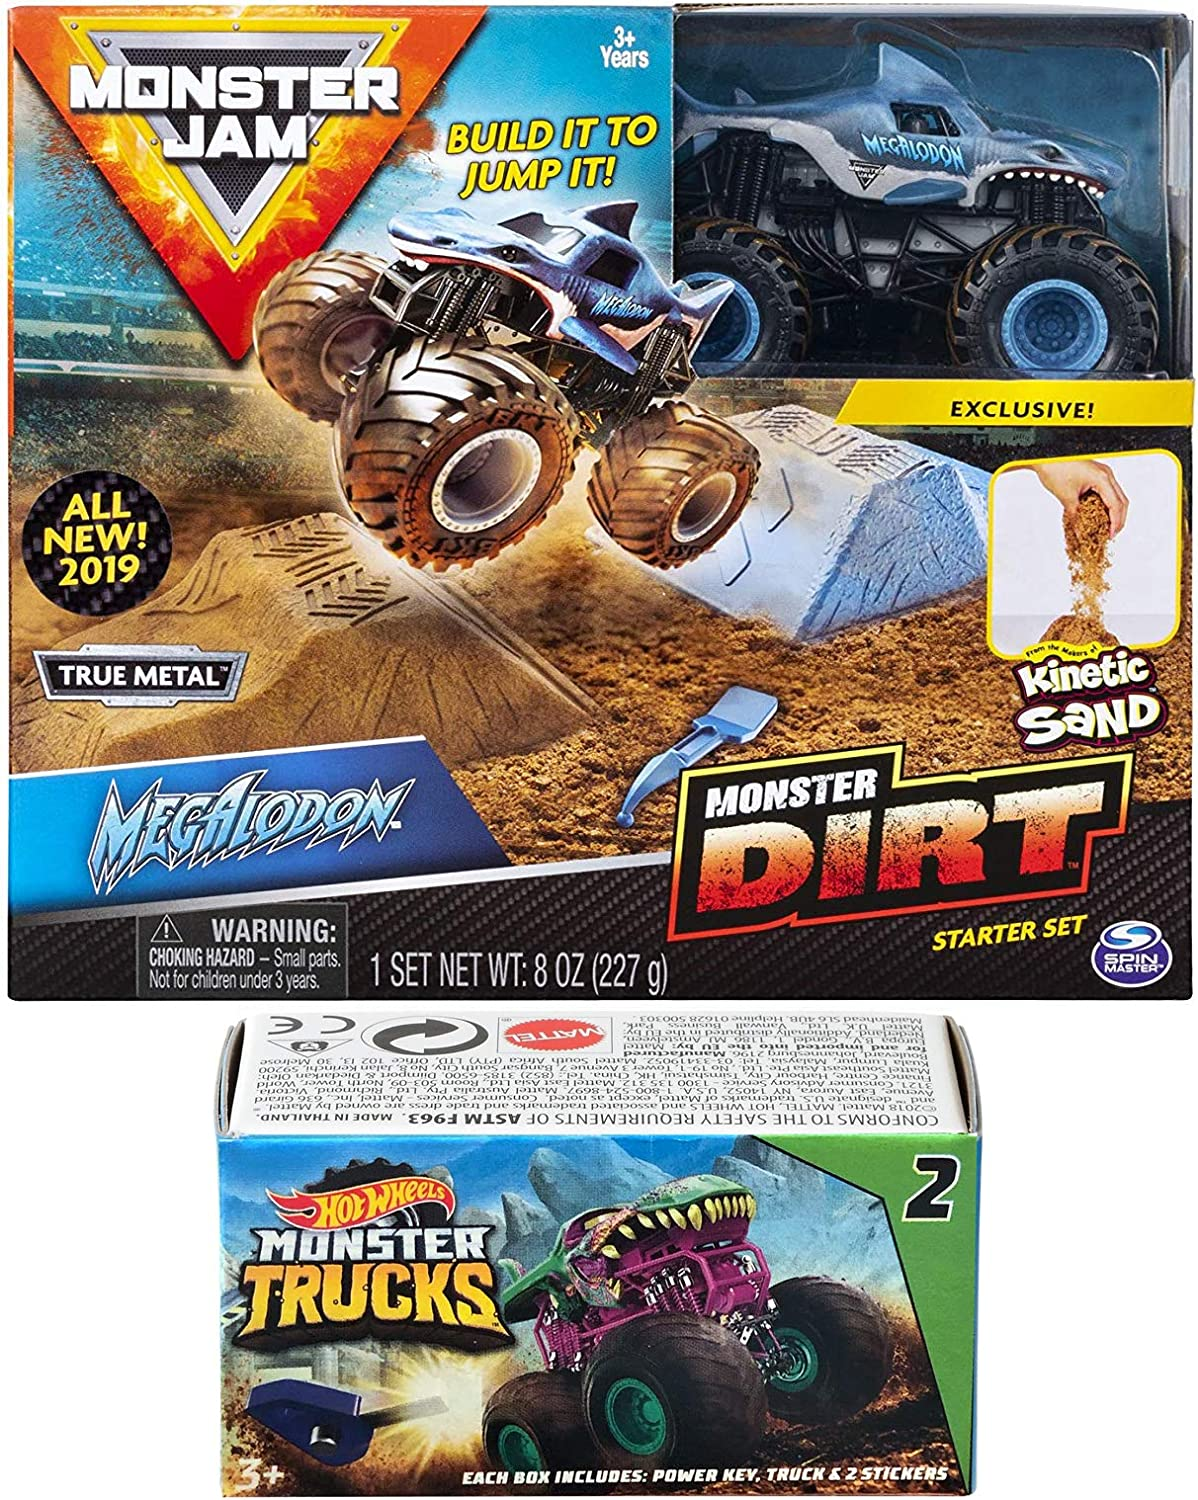 Amazon Com Dirt Crew Monster Jam Kit Action 2019 Megalodon Shark Truck And Sand Hot Wheels Blind Box Series Mini Monster Truck With Launcher Toys Games